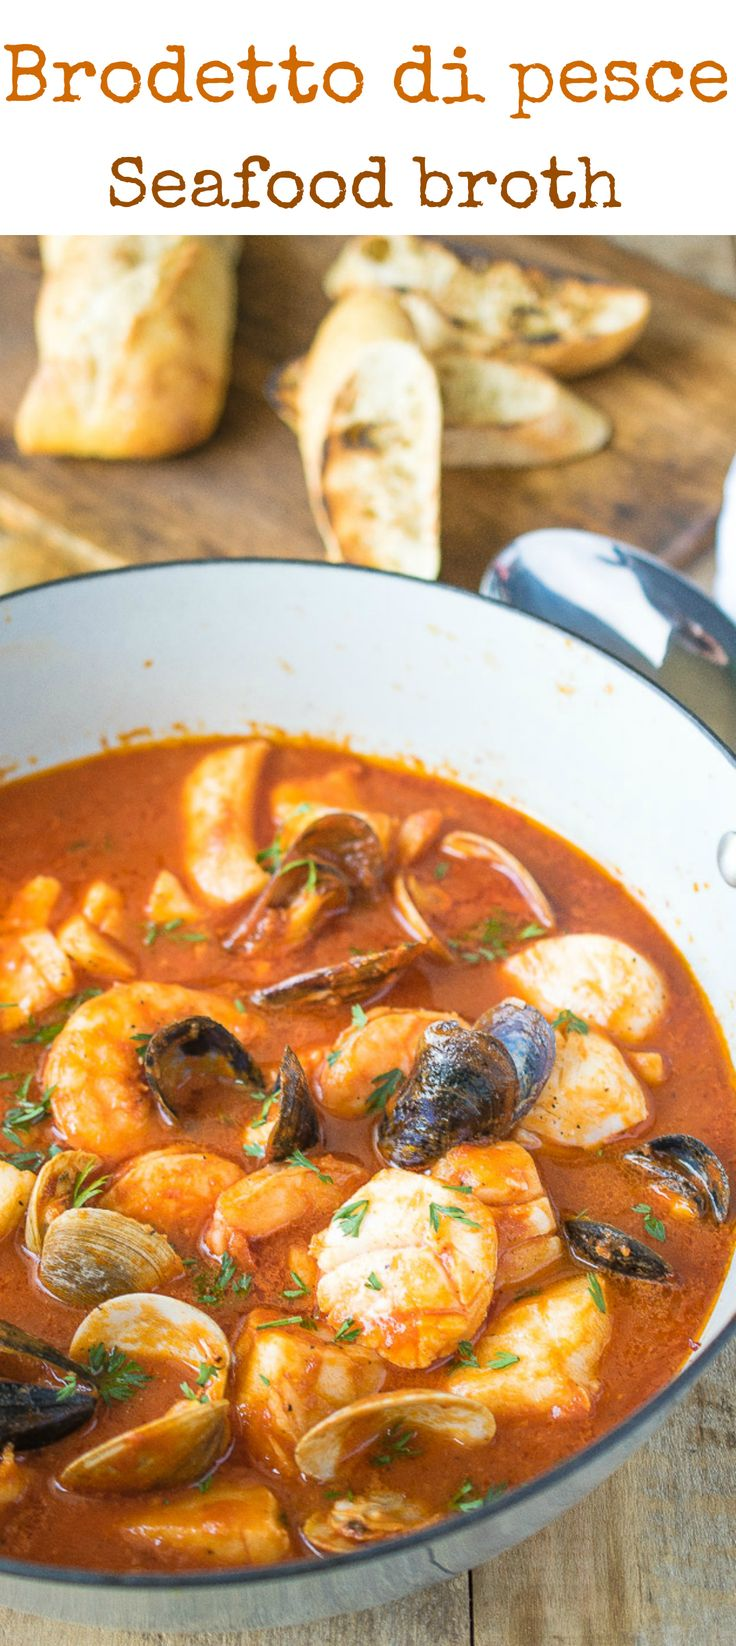 Brodetto di pesce (seafood broth) is an authentic, Italian seafood dish. A delicious selection of seafood cooked in a tomato broth flavored with wine and garlic. It's comfort food for seafood lovers. #perfectionissimple #ad